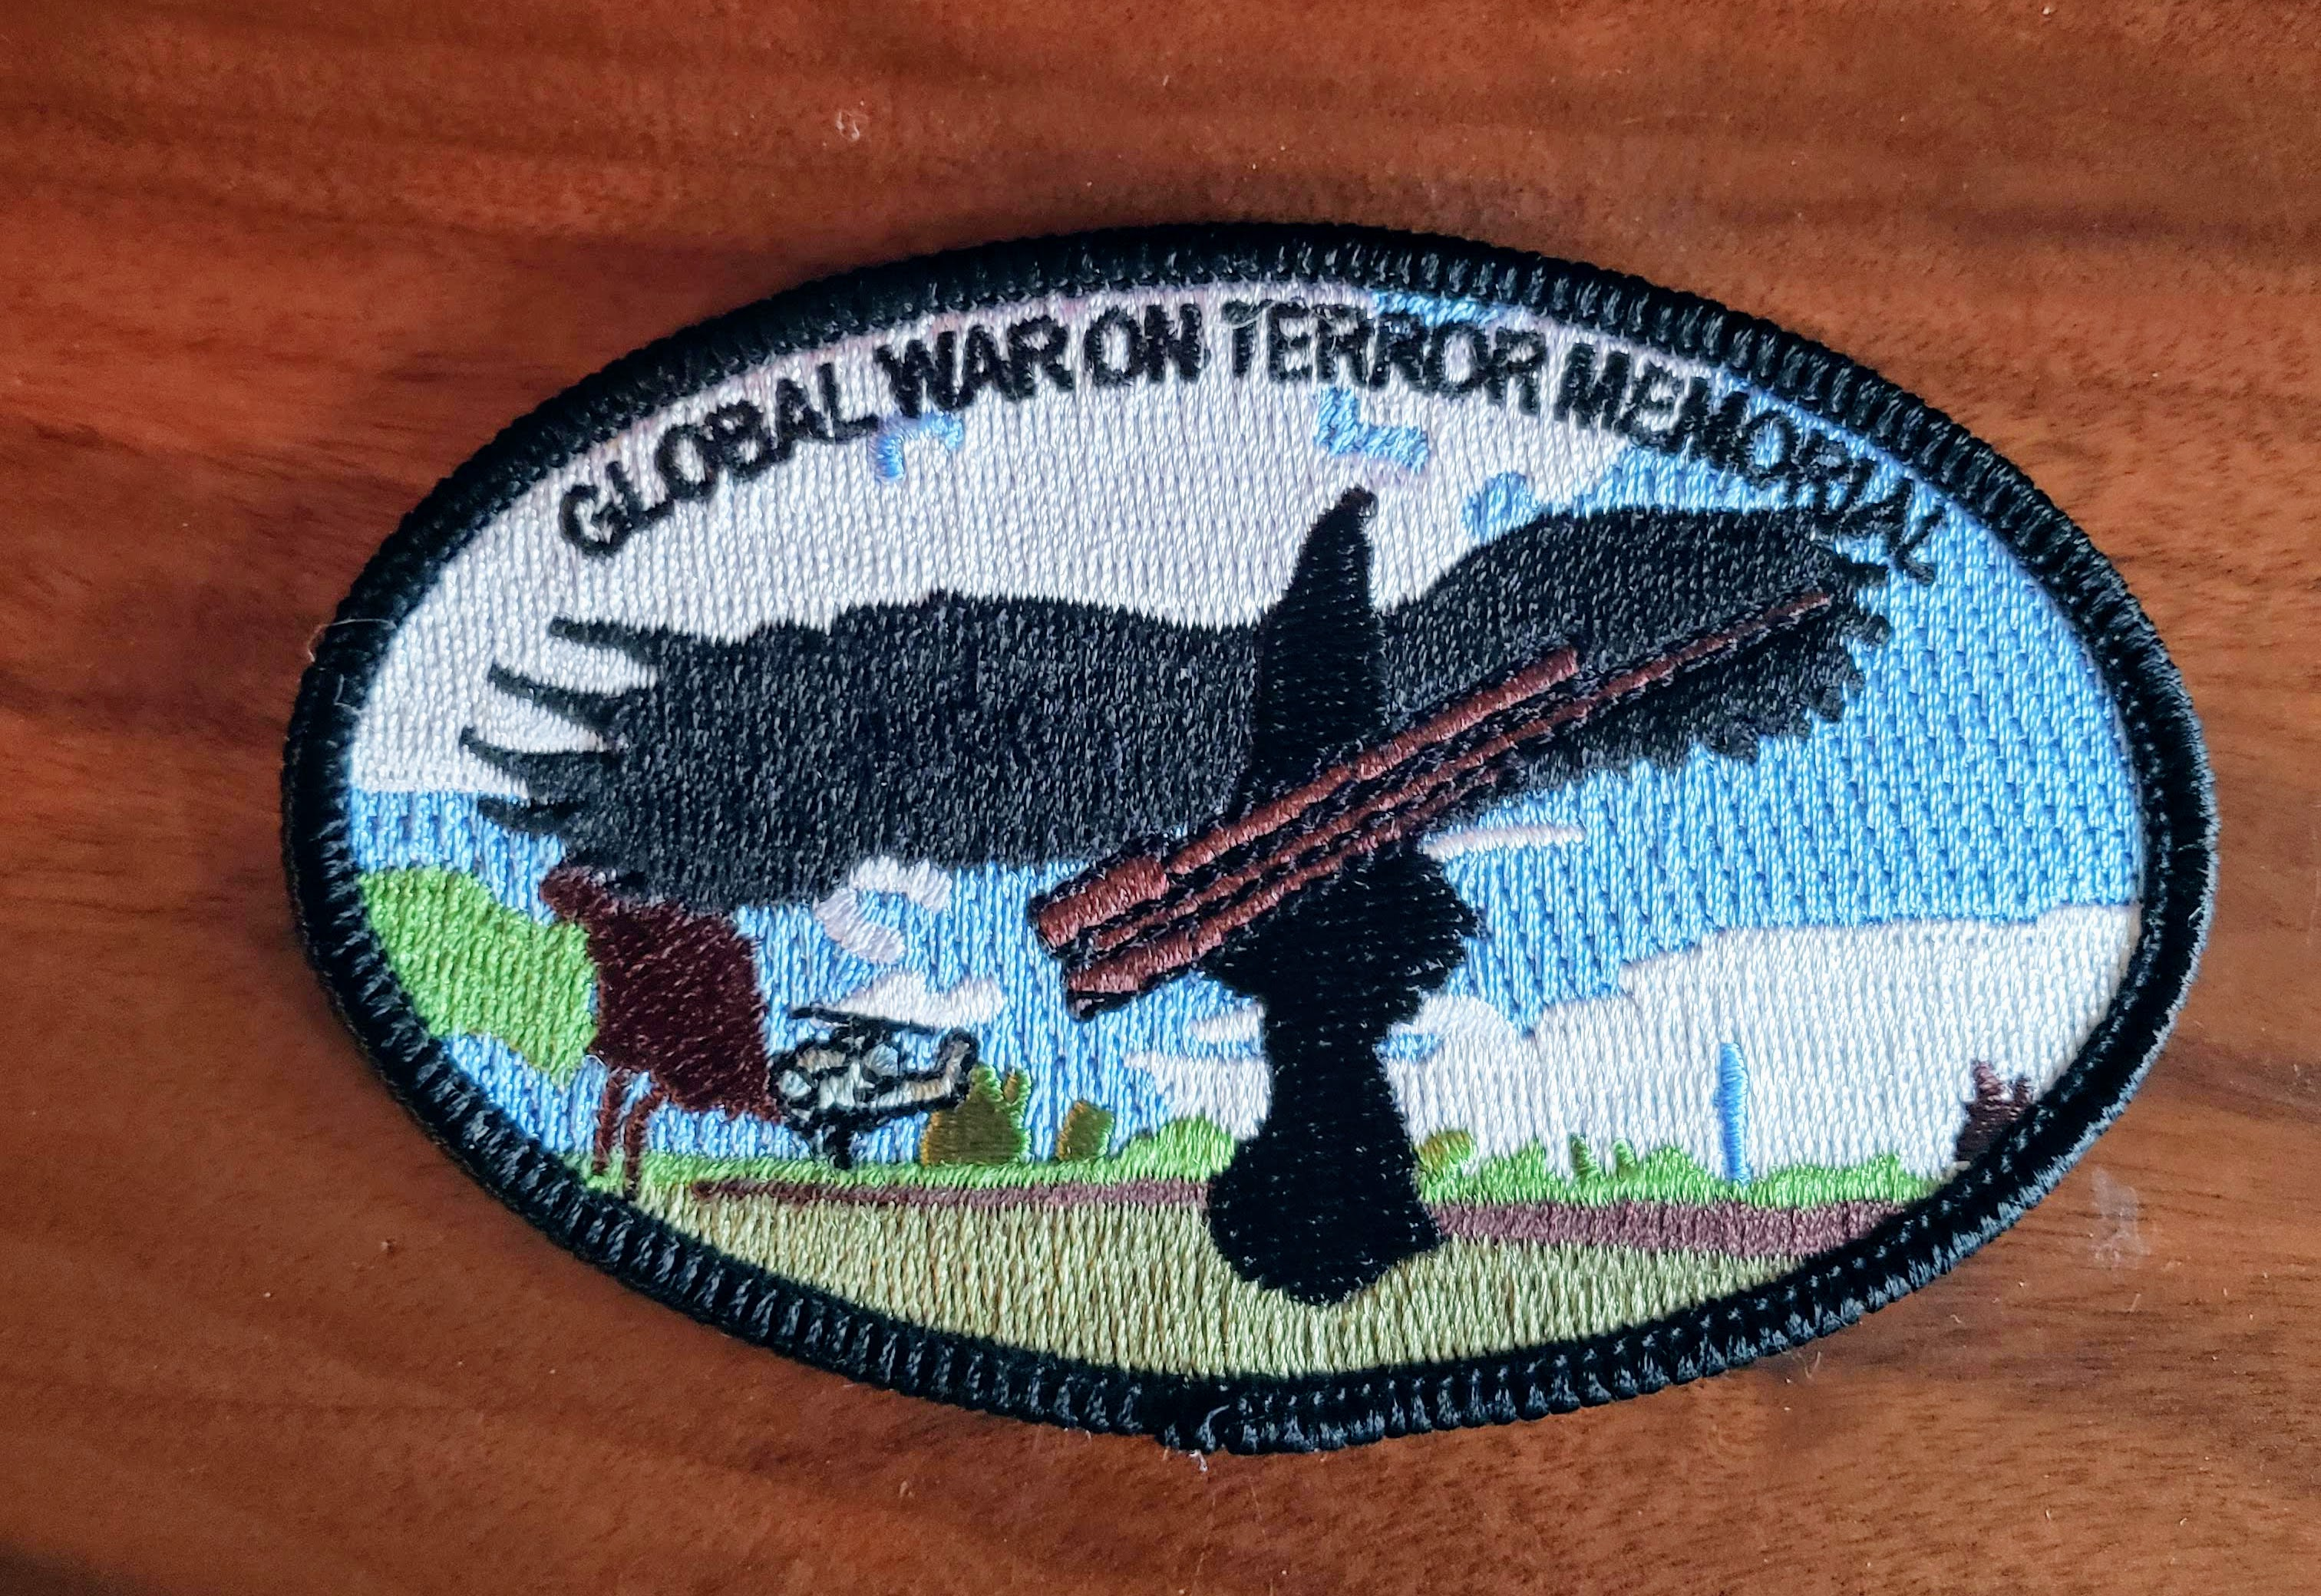 Global War on Terror Memorial Patch